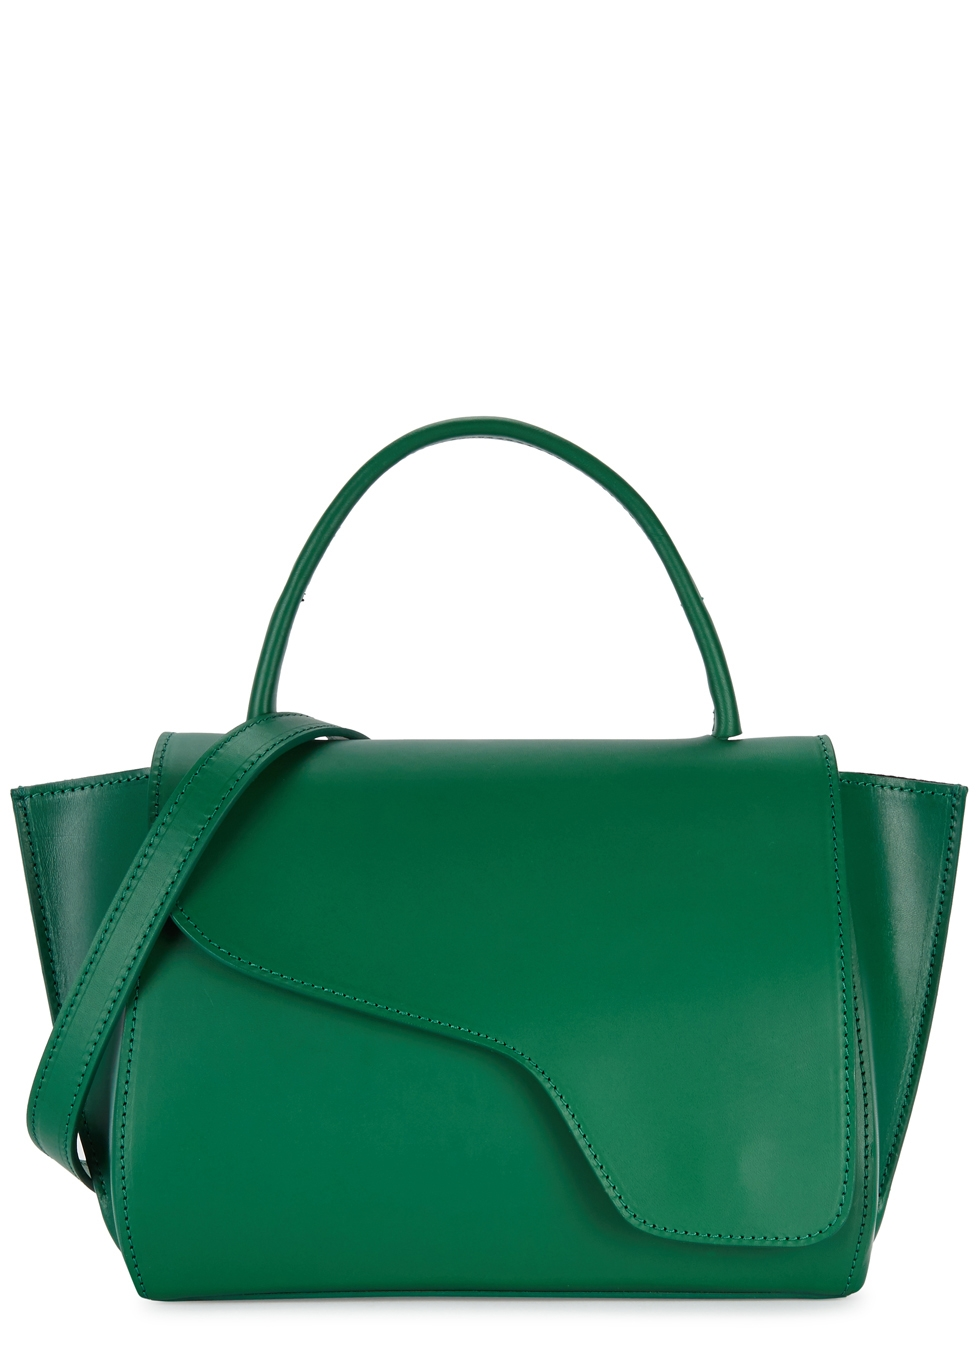 ATP ATELIER AREZZO GREEN LEATHER SHOULDER BAG